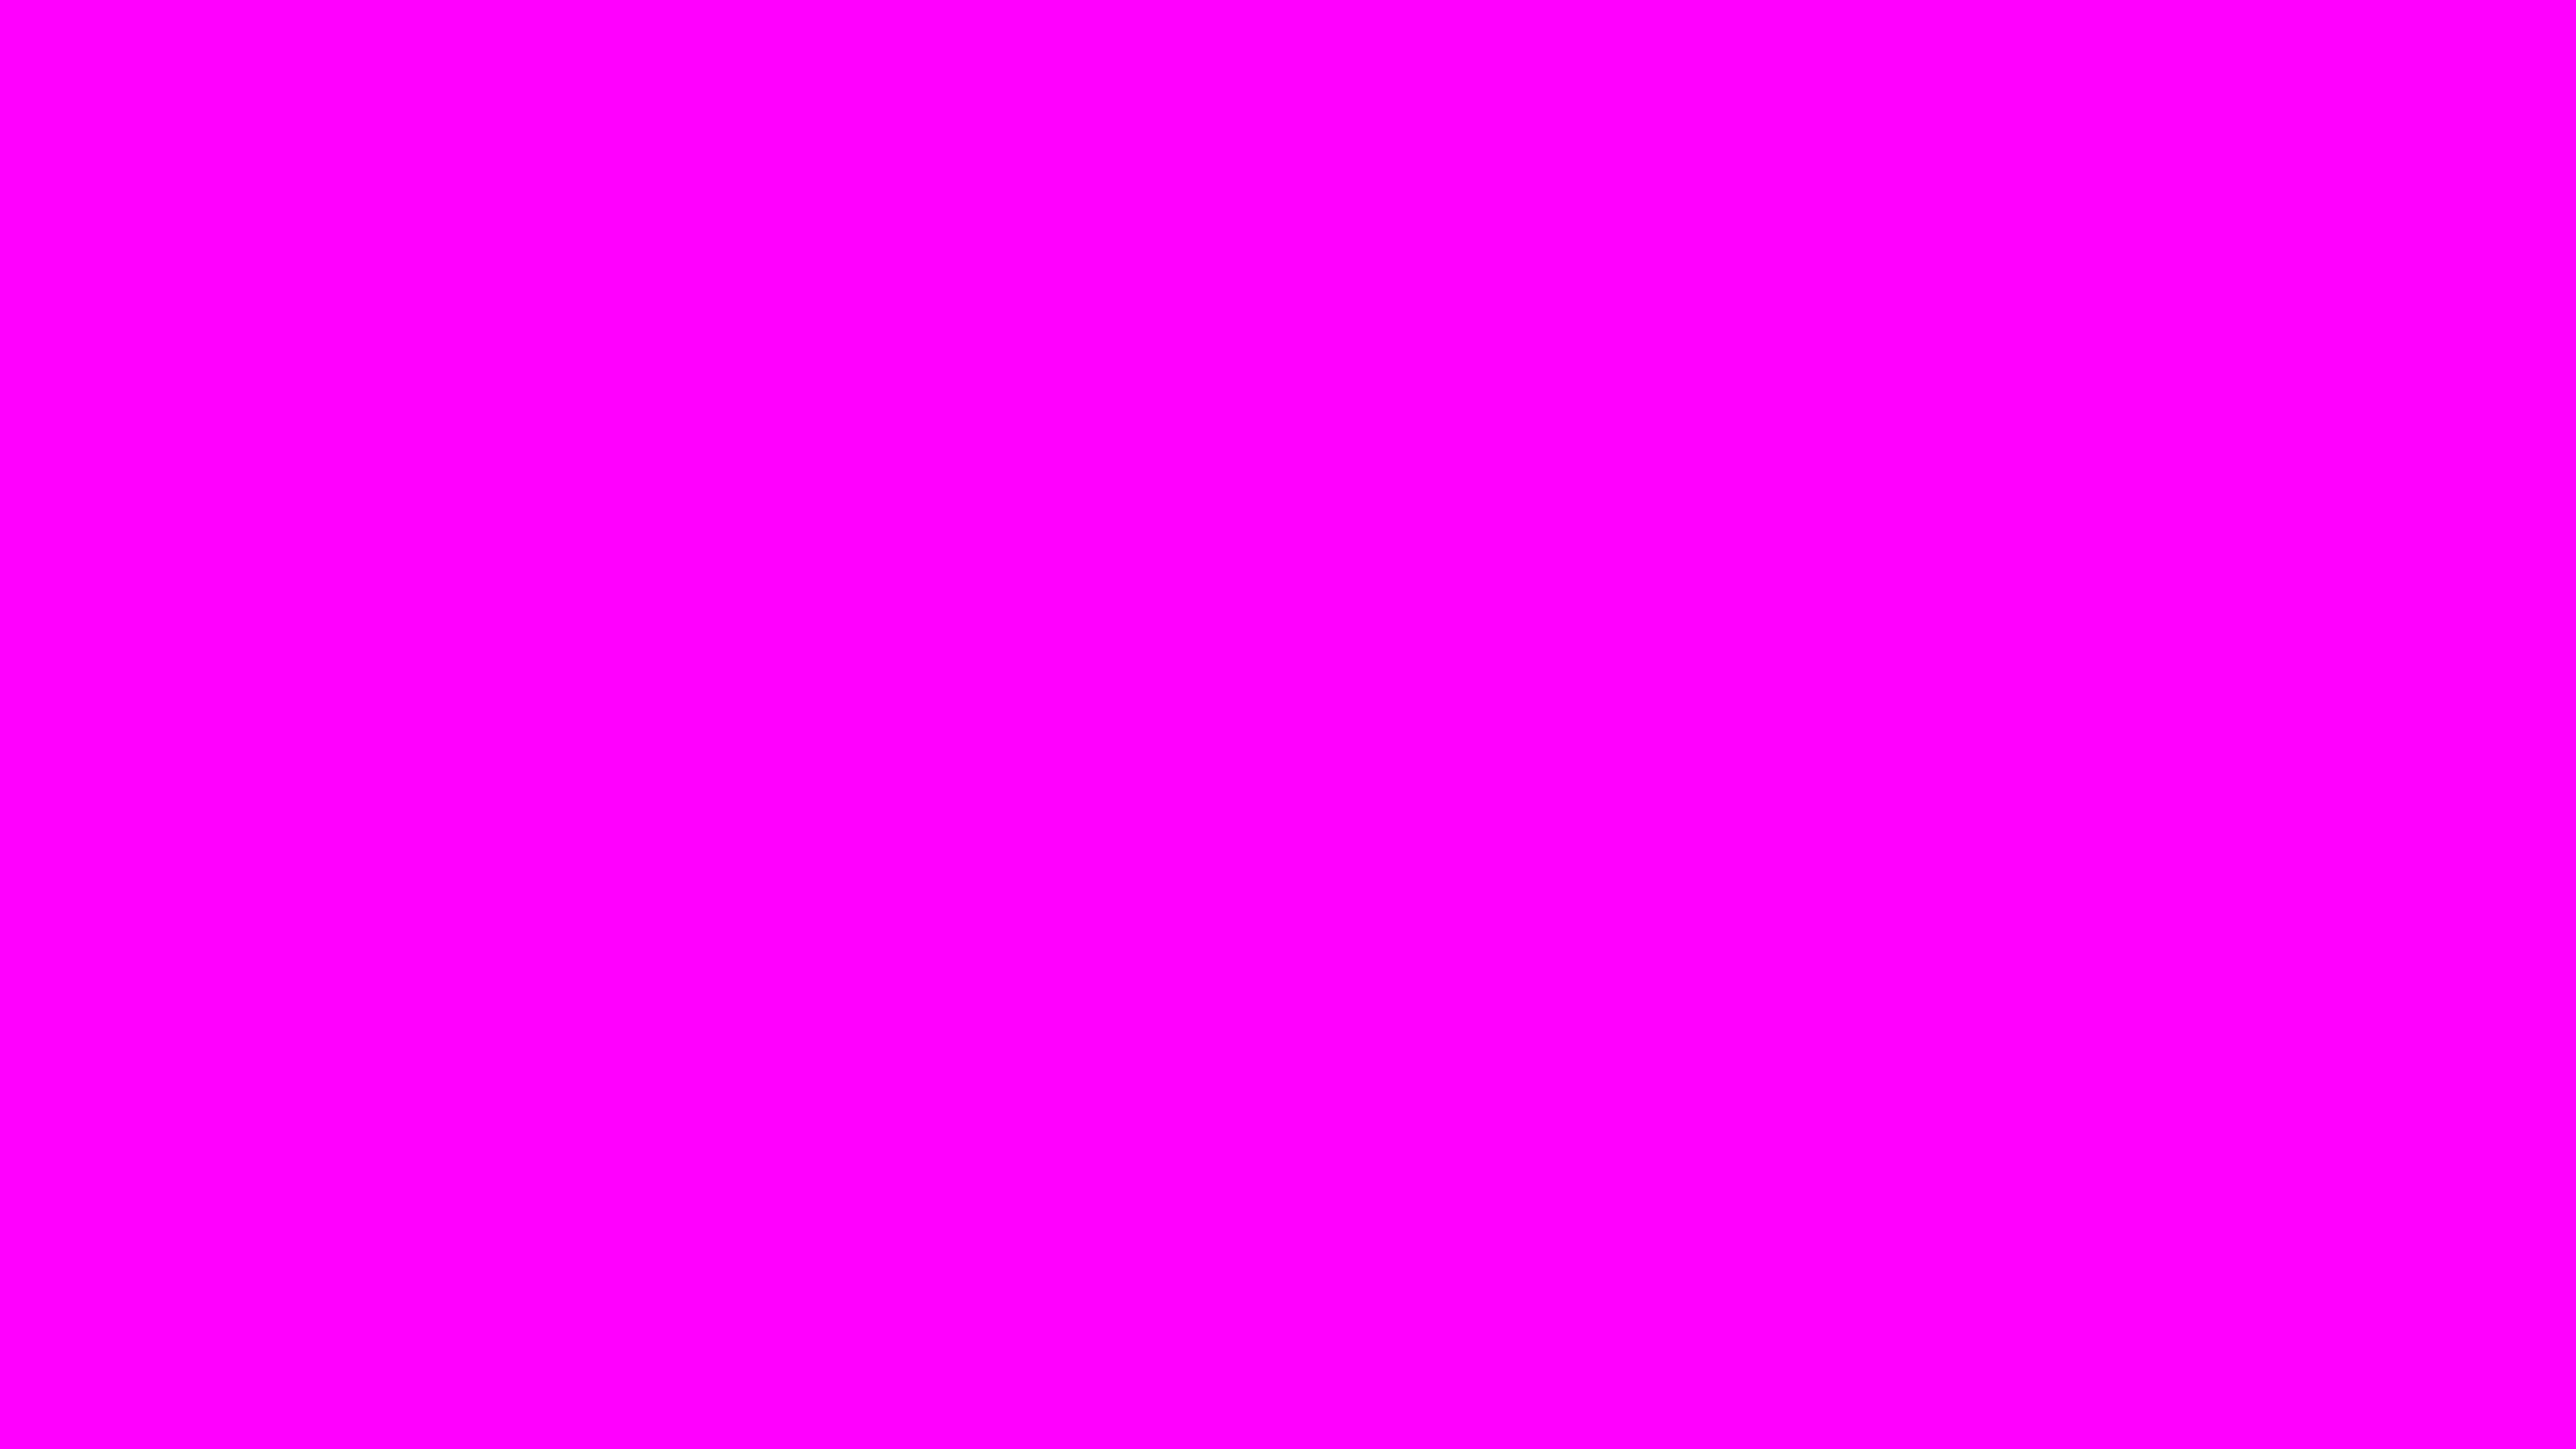 4096x2304 Magenta Solid Color Background